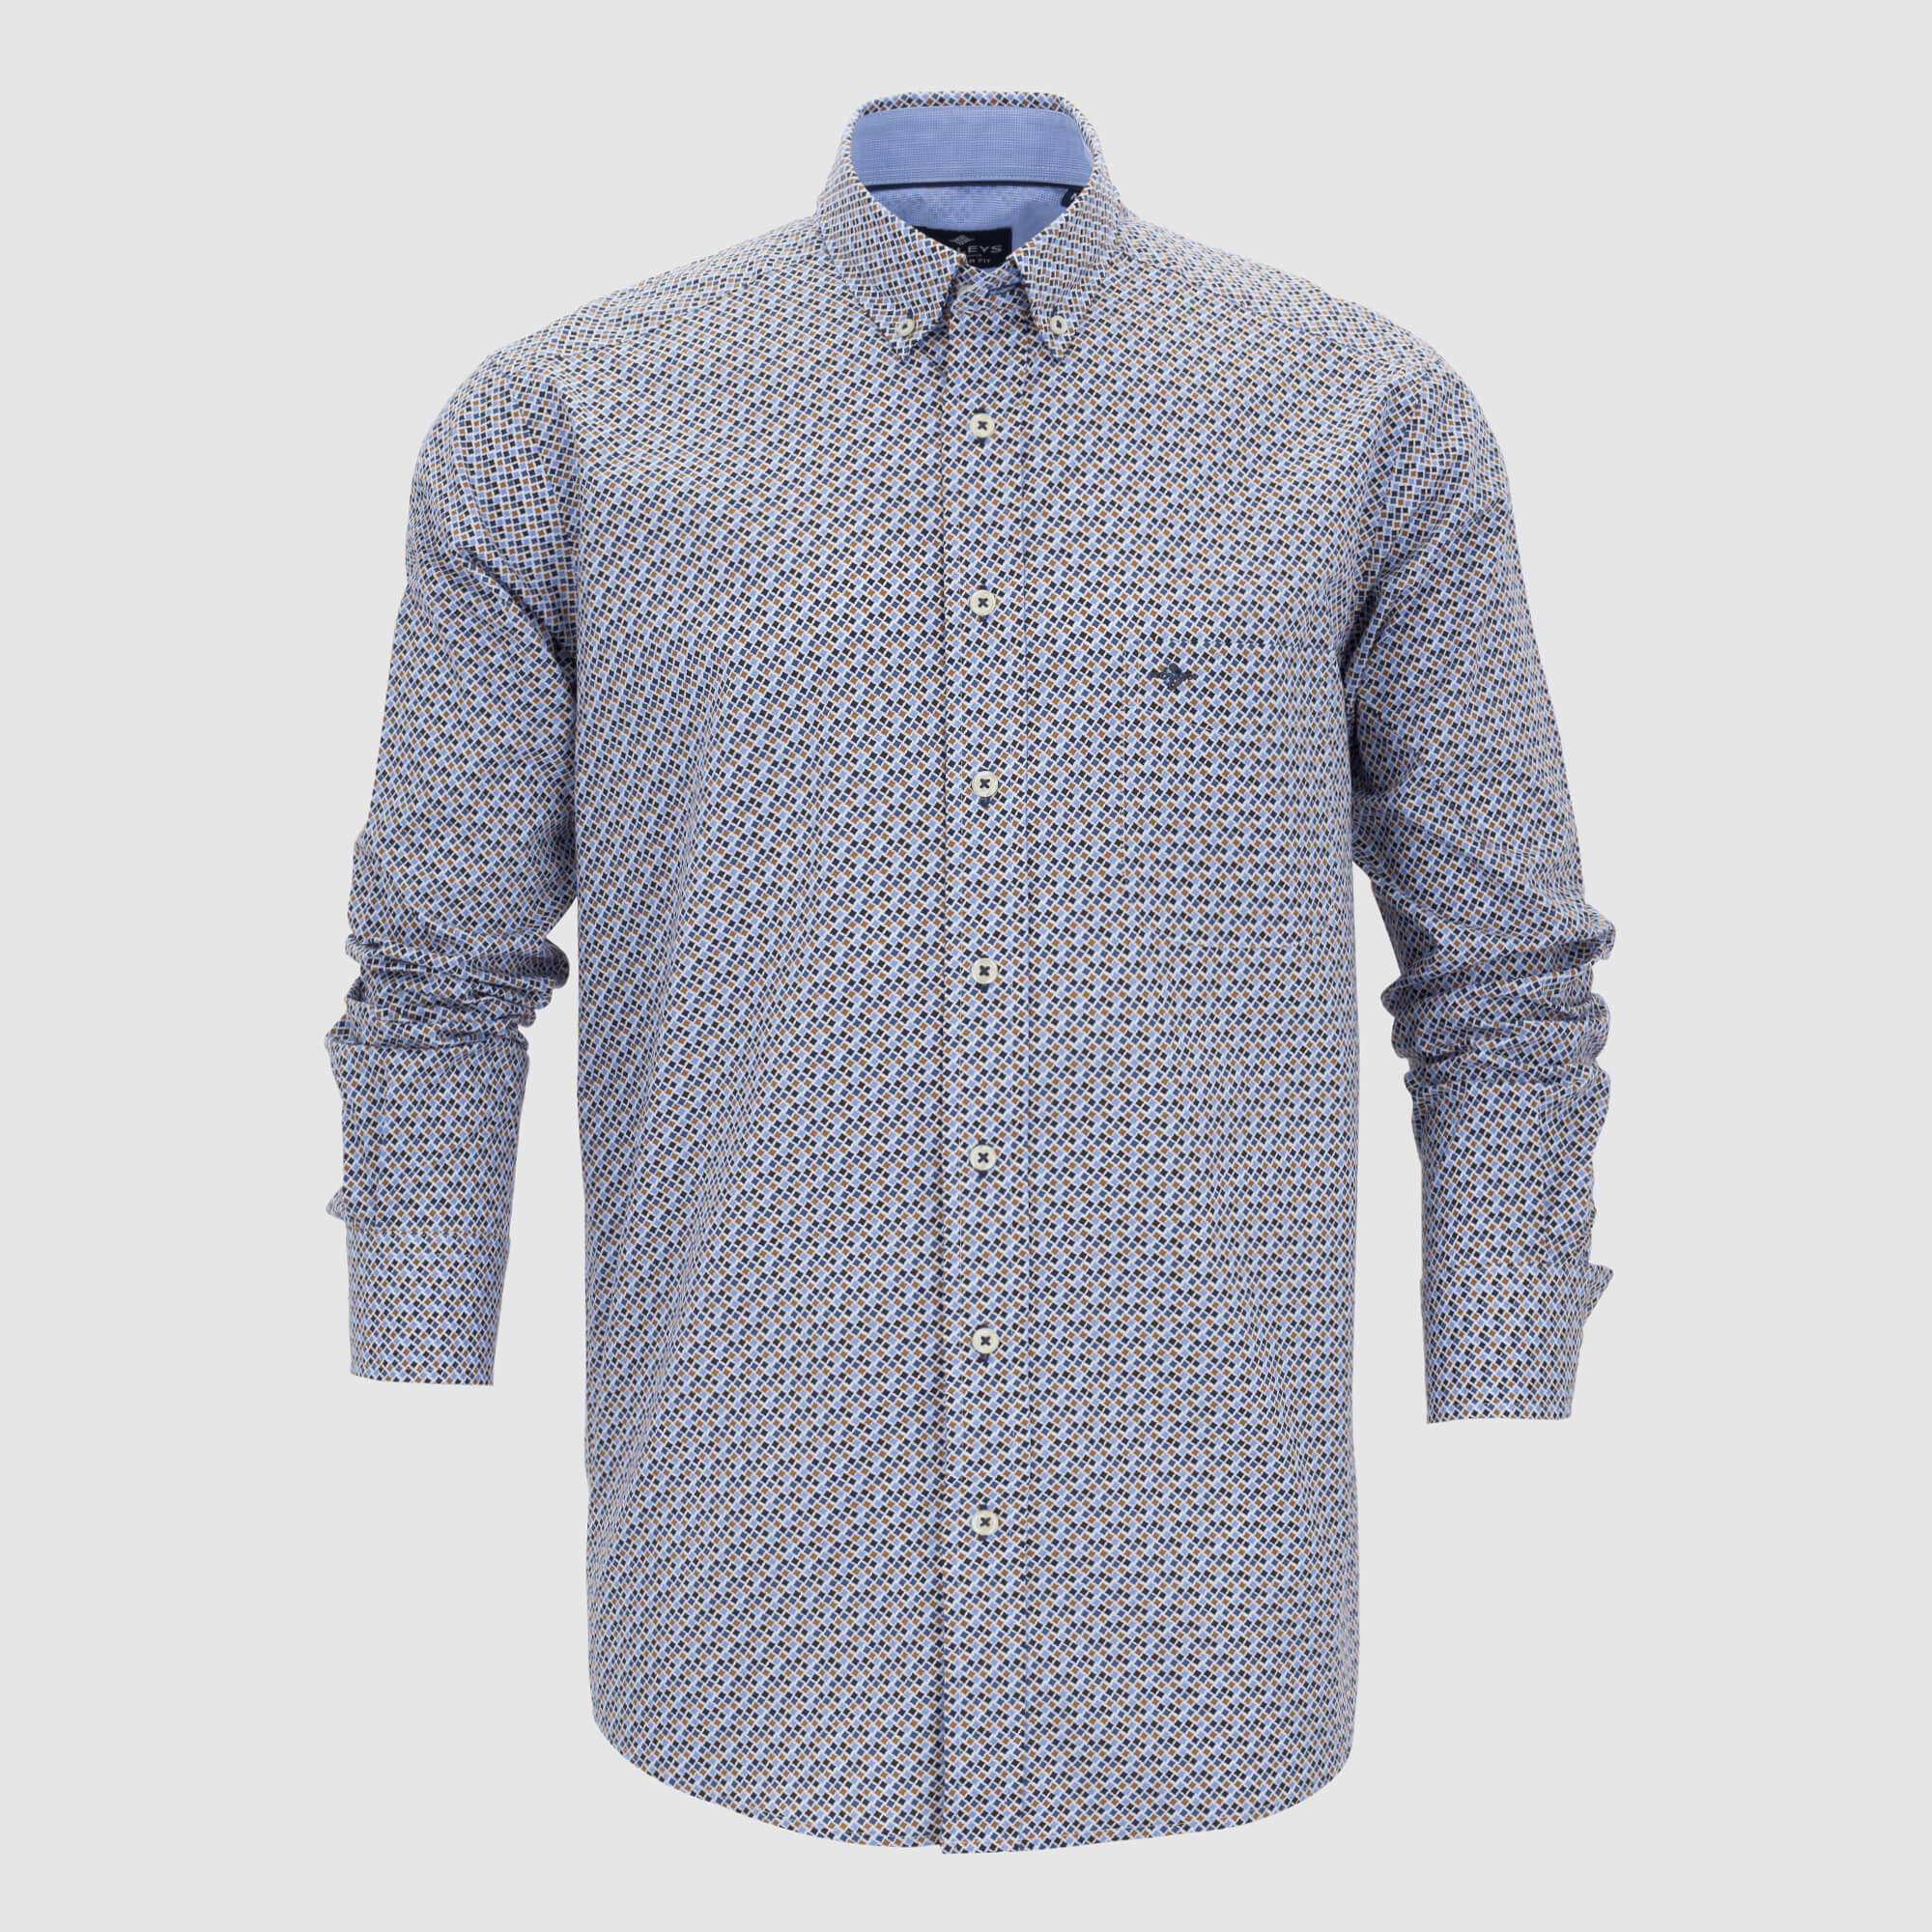 Camisa estampada regular fit 207671